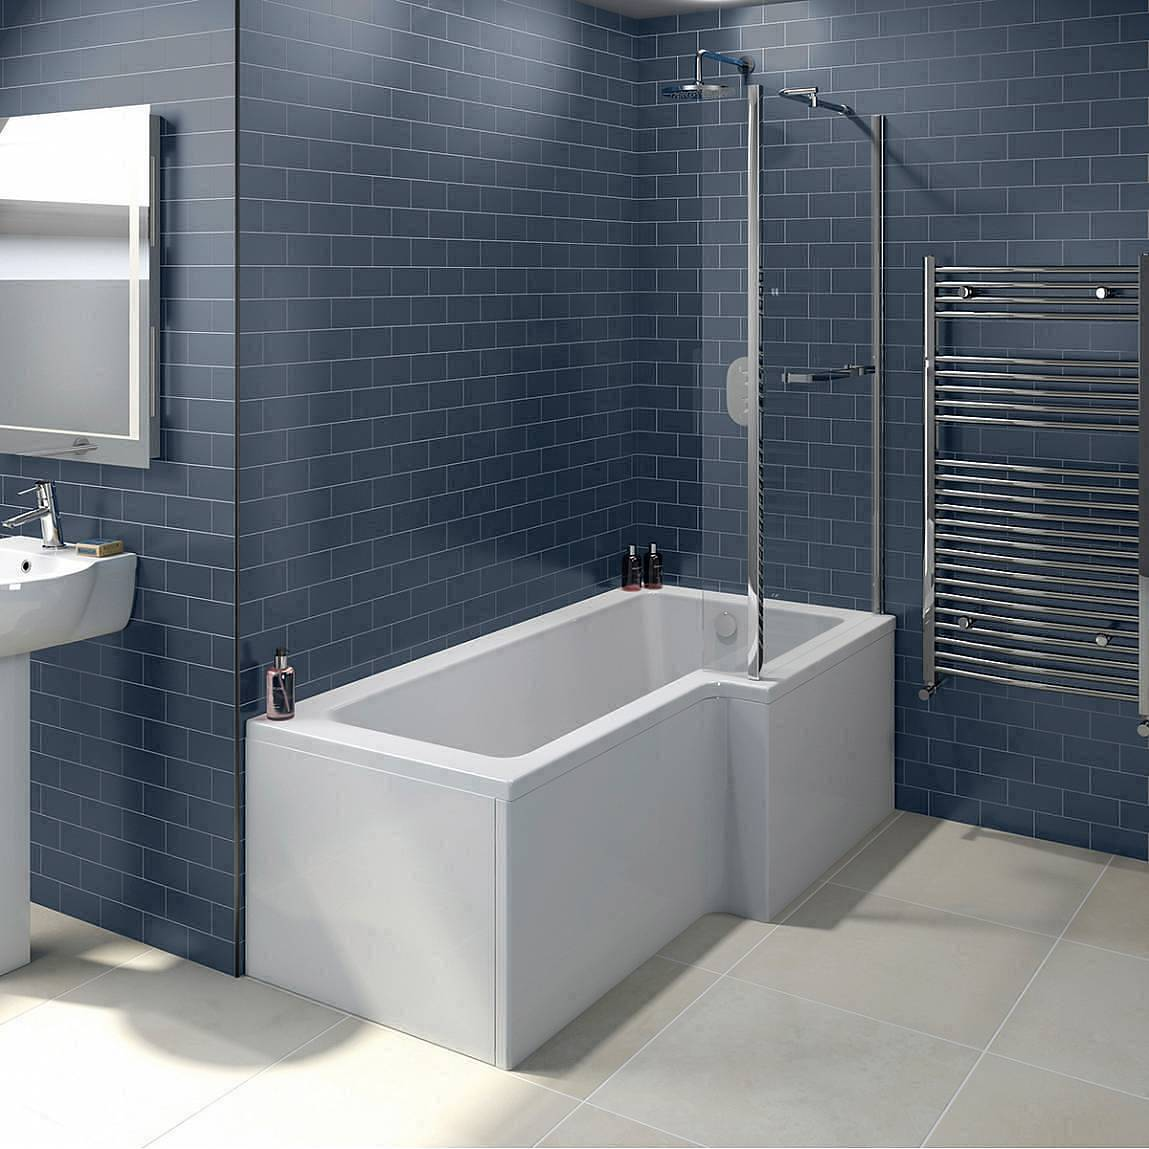 6\'x8\' shower room with walk-in... anyone got pics of theirs? - Page ...